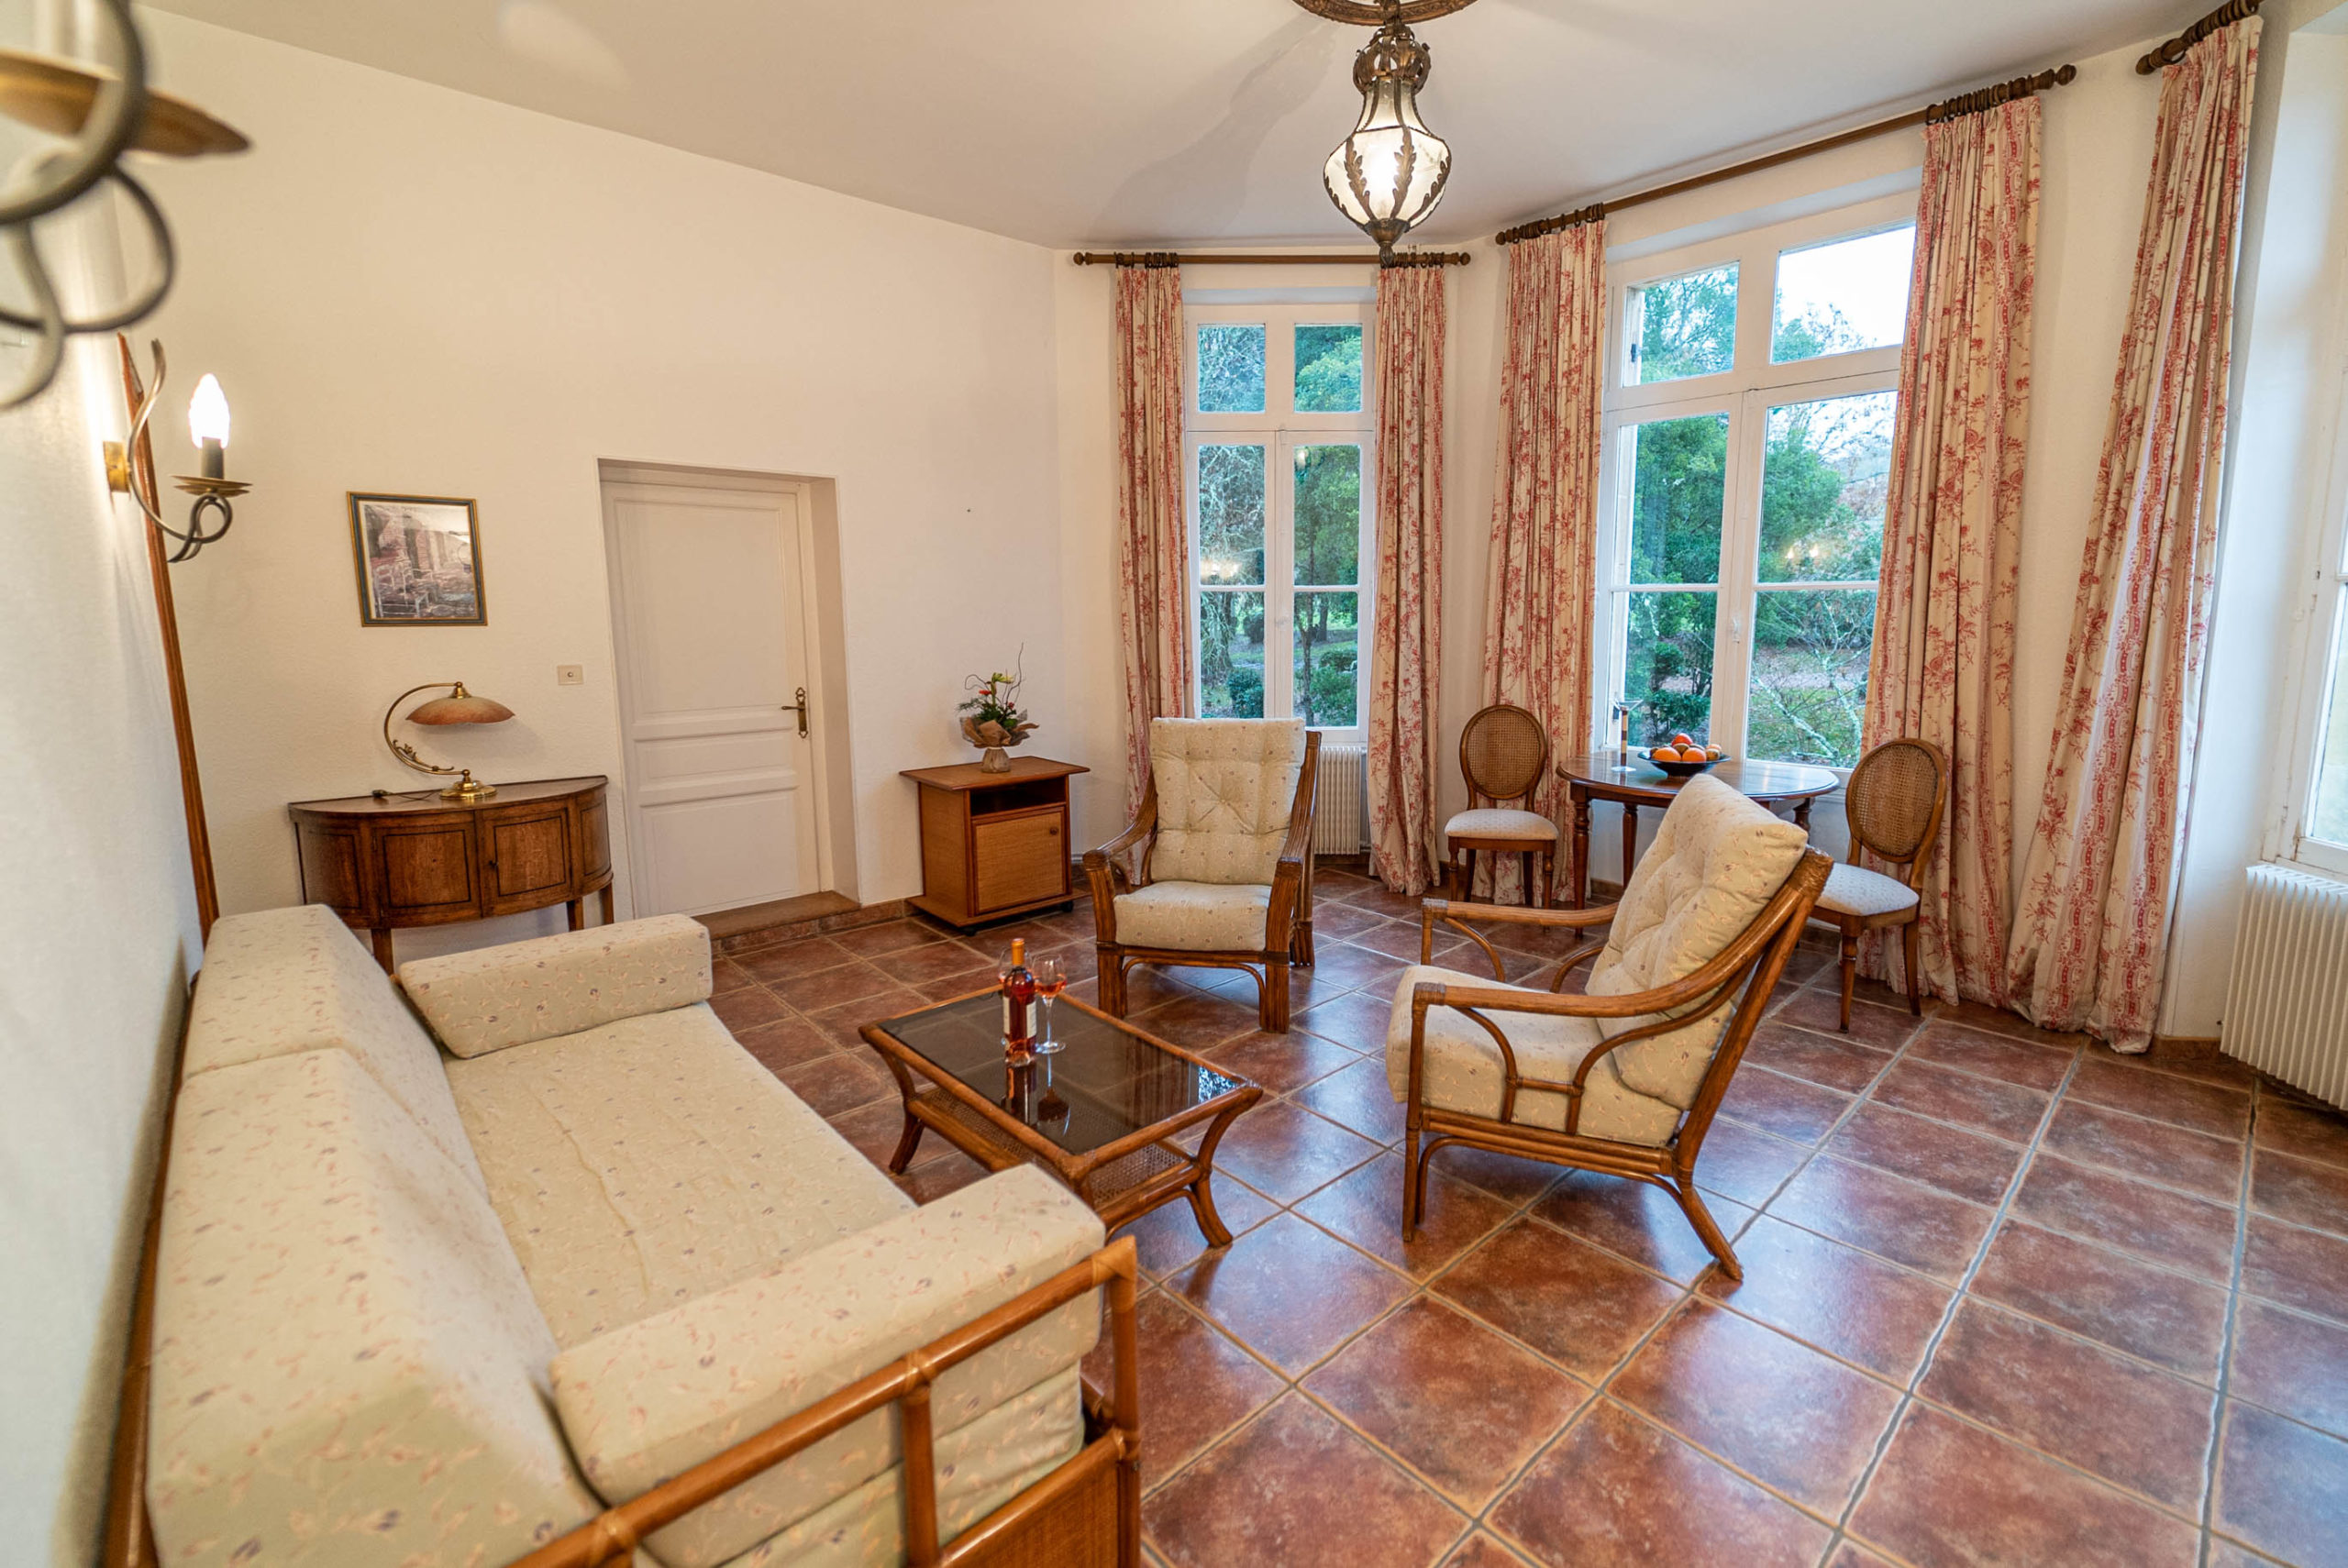 Salon suite marquise chateau Rauly location bergerac Monbazillac